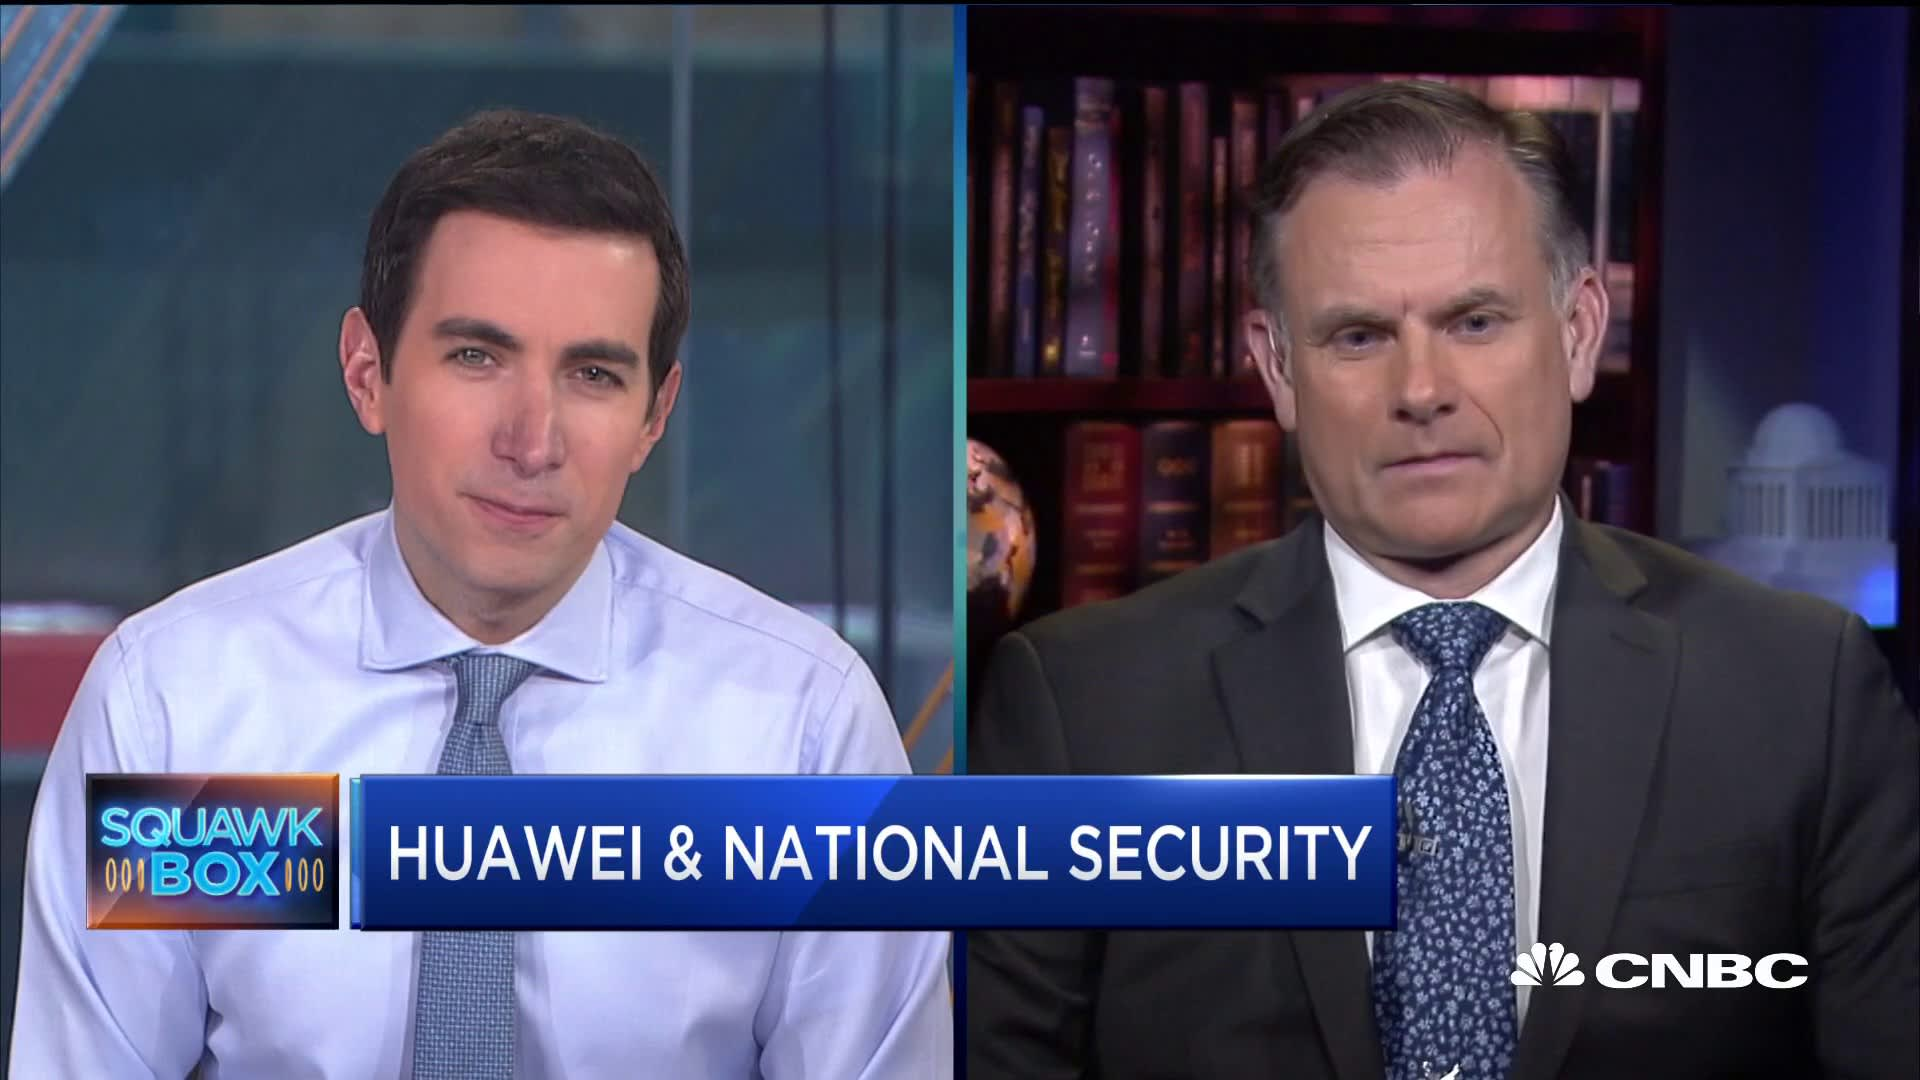 Huawei suppliers like Google, Qualcomm and Intel will meet with White House officials as they seek exemptions from ban